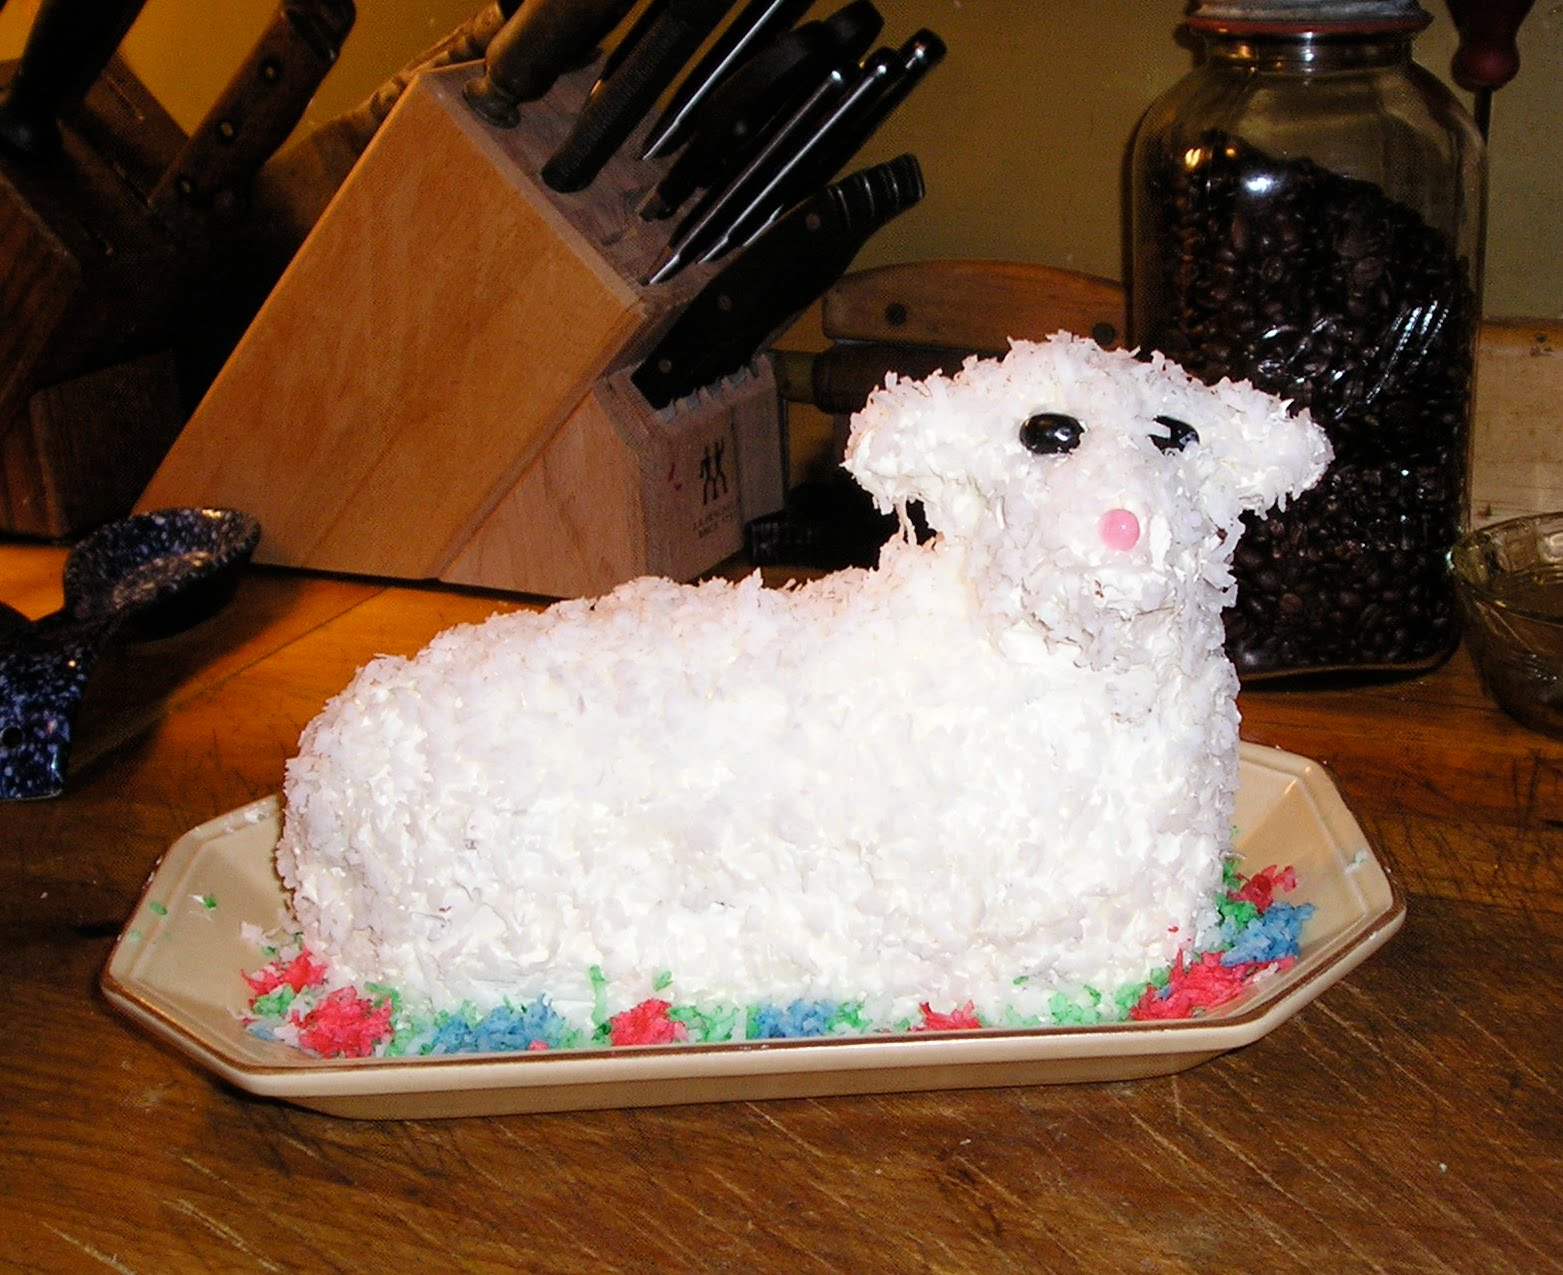 ... Mother's Meatloaf: Easter Coconut Lamb Cake - It's A Family Tradi...